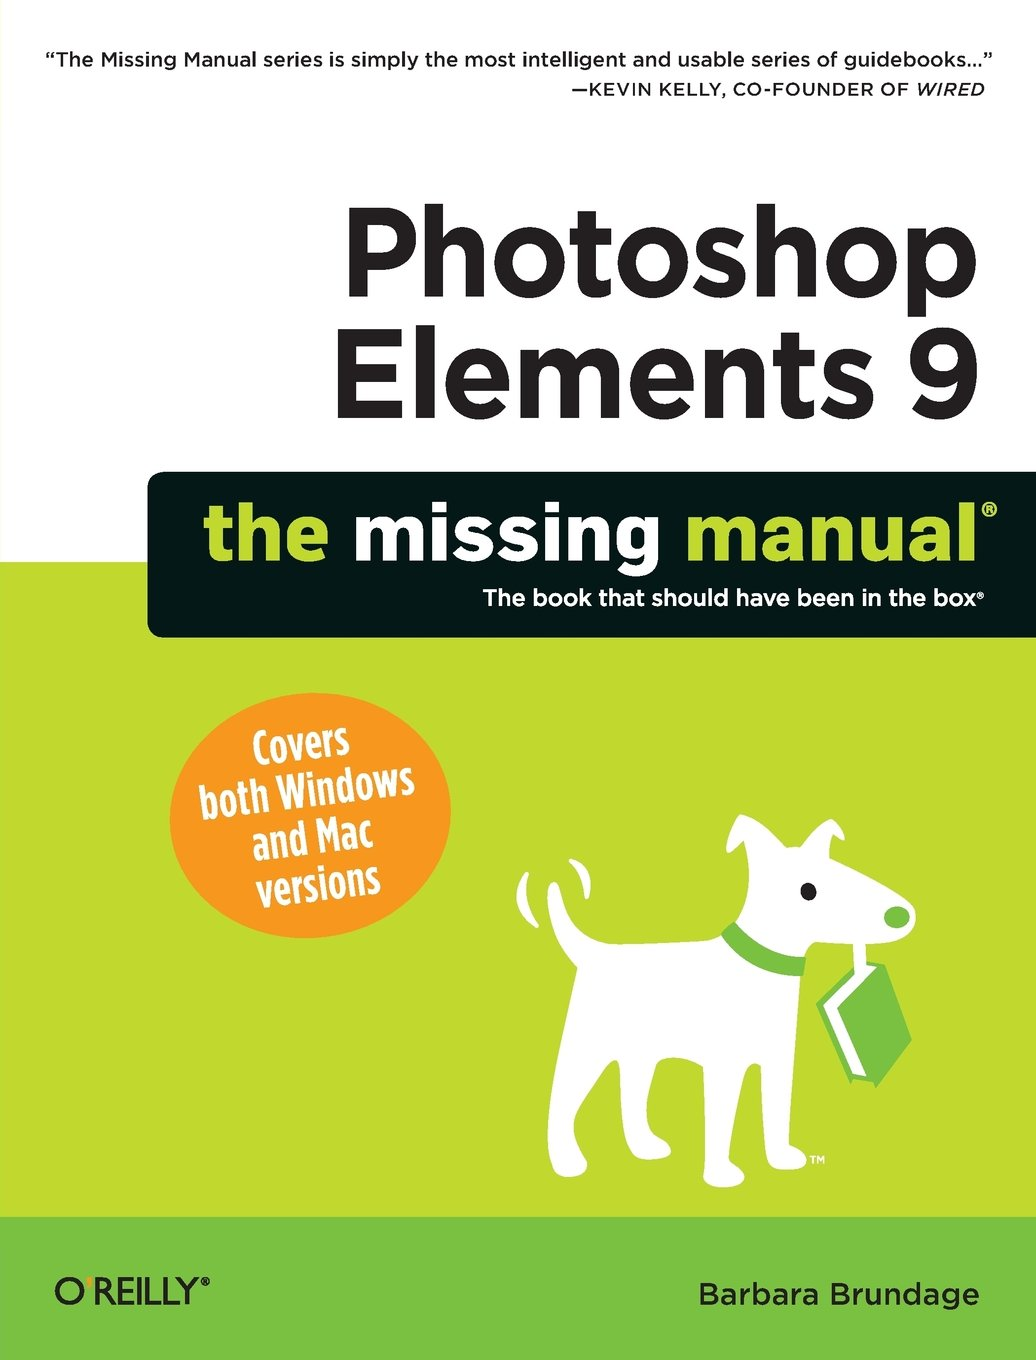 Photoshop elements 9 the missing manual barbara brundage photoshop elements 9 the missing manual barbara brundage 9781449389673 photography amazon canada baditri Images